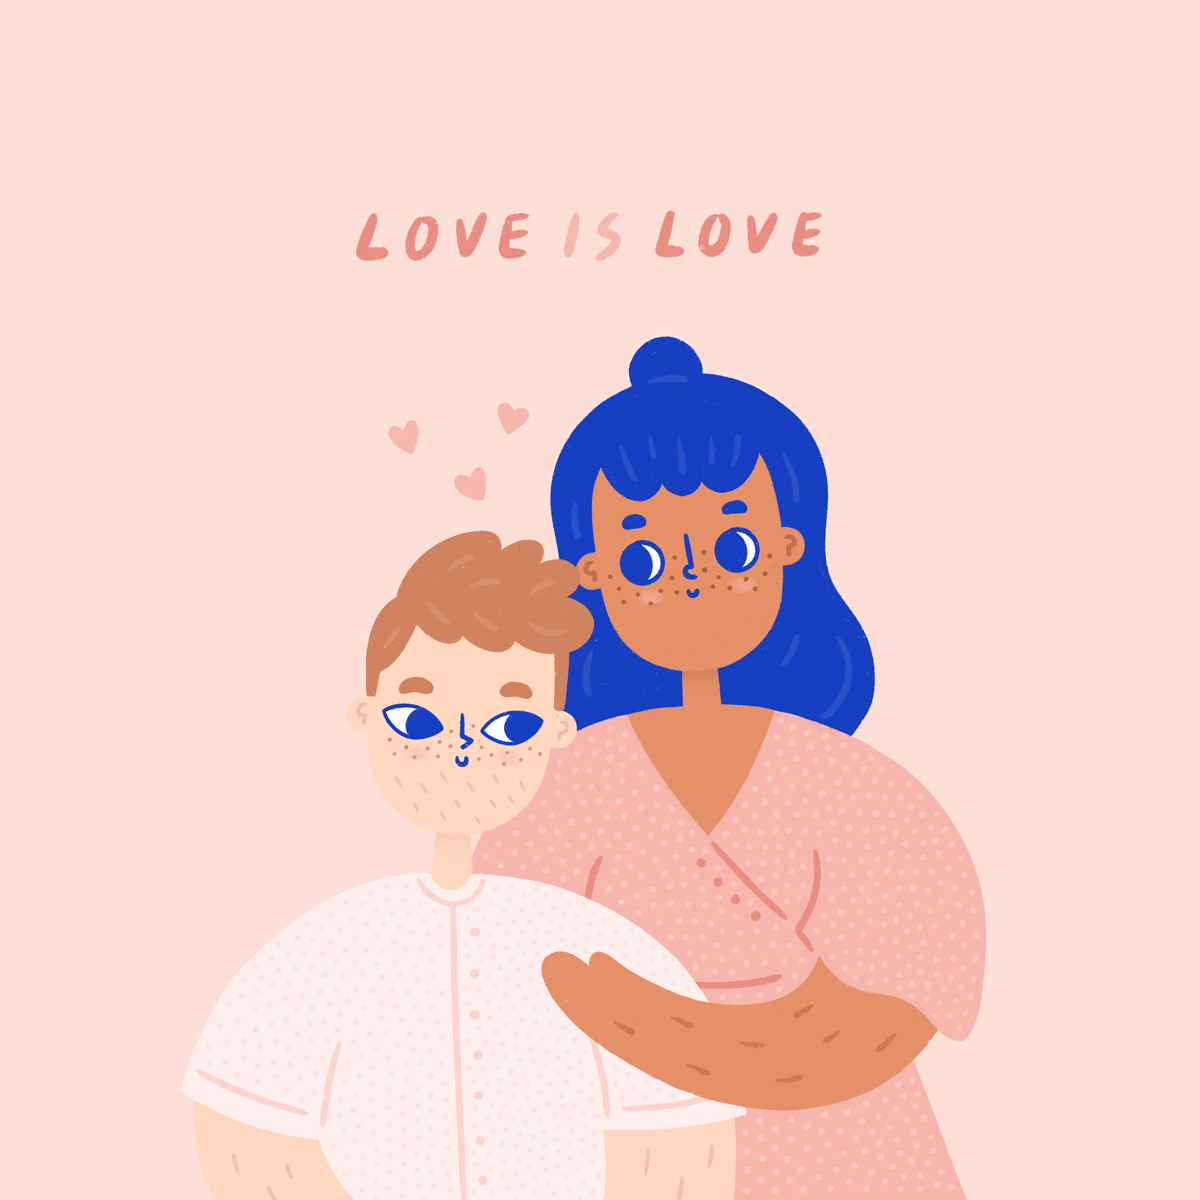 cad_illustration_loveislove_3.png